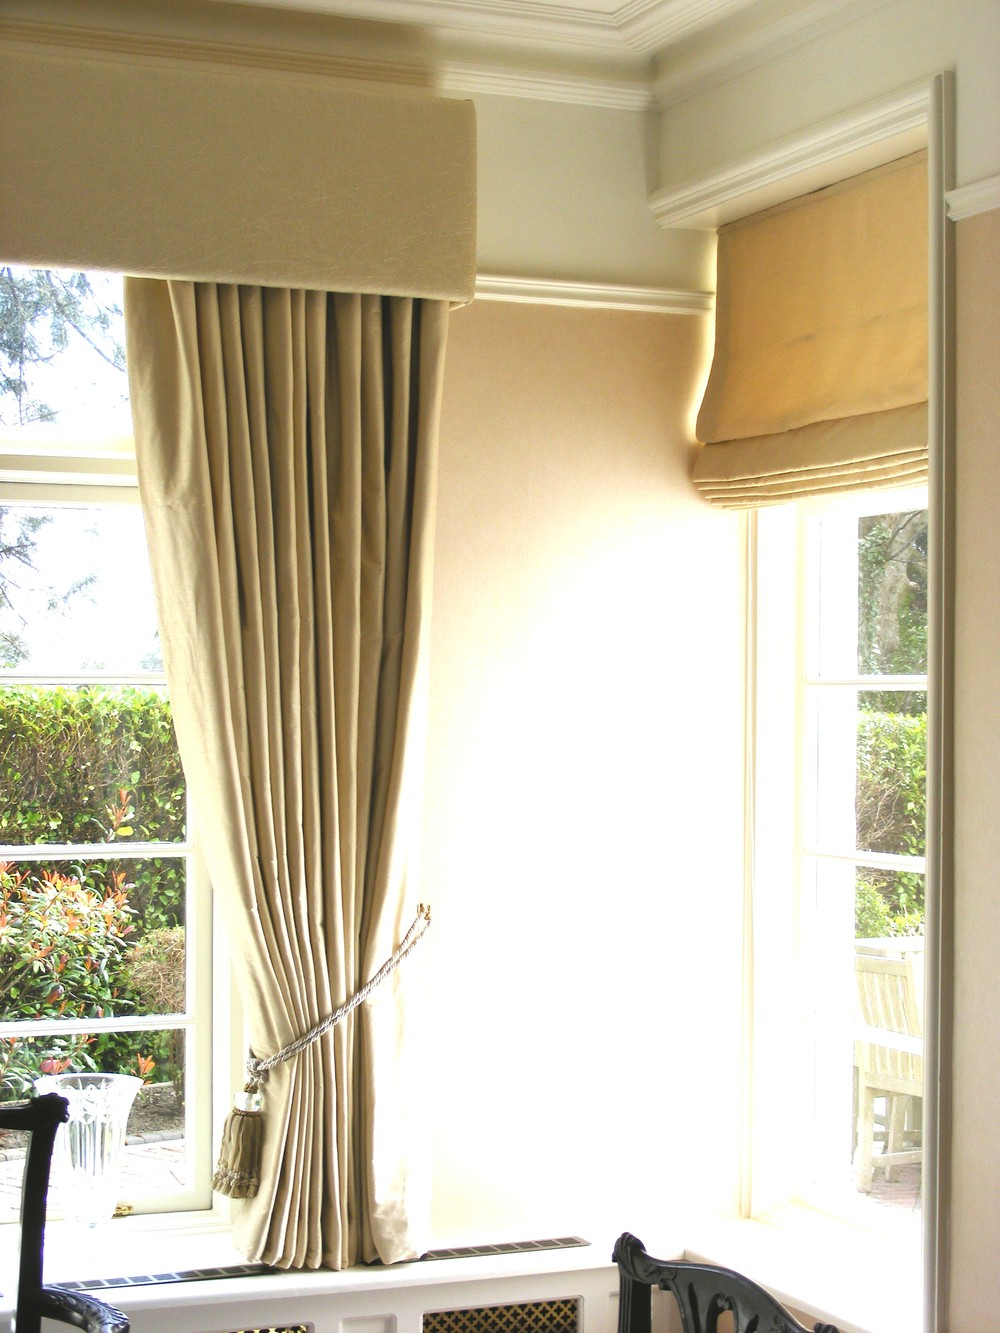 Straight pelmet with curtain and roman blind